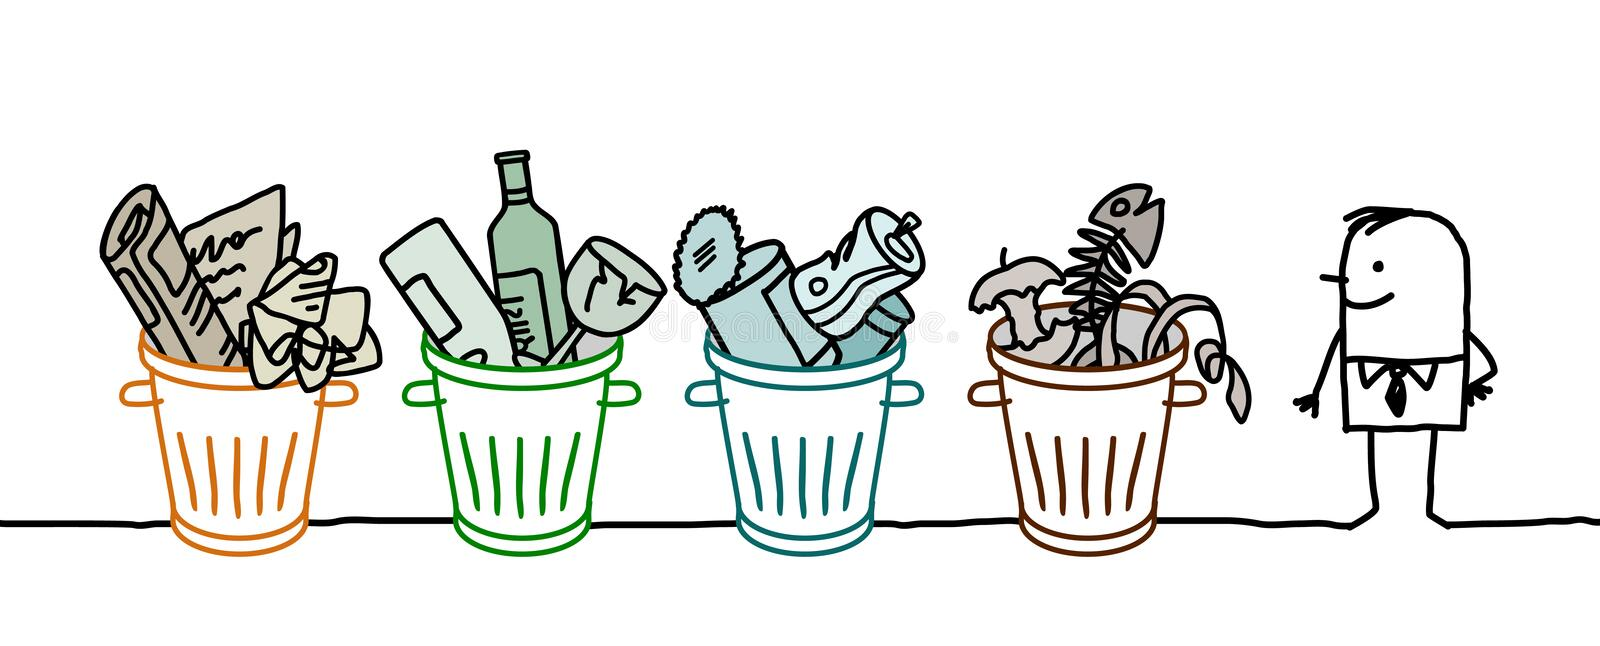 Man and selective sorted garbage. Hand drawn cartoon characters royalty free illustration